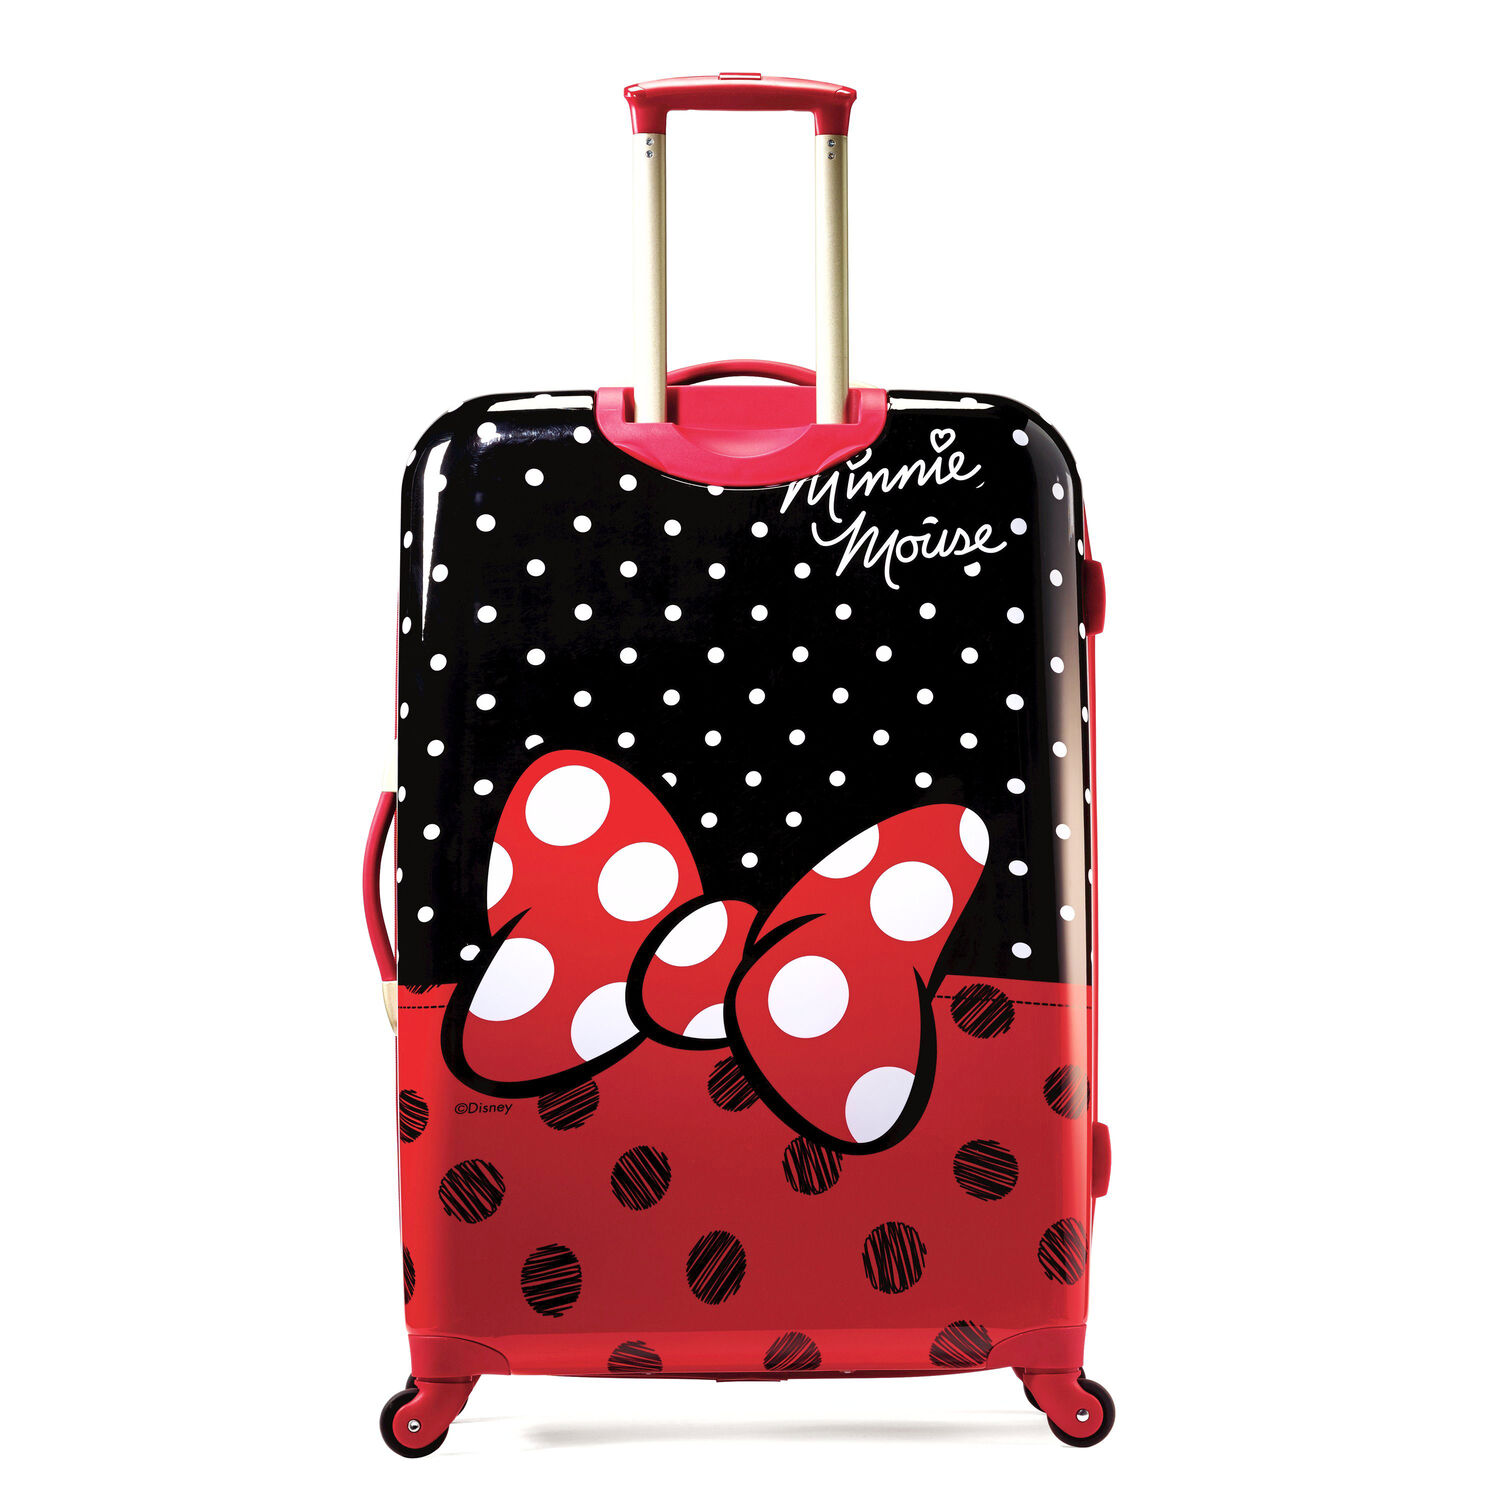 American Tourister Disney Minnie Mouse 28 Quot Hardside Spinner